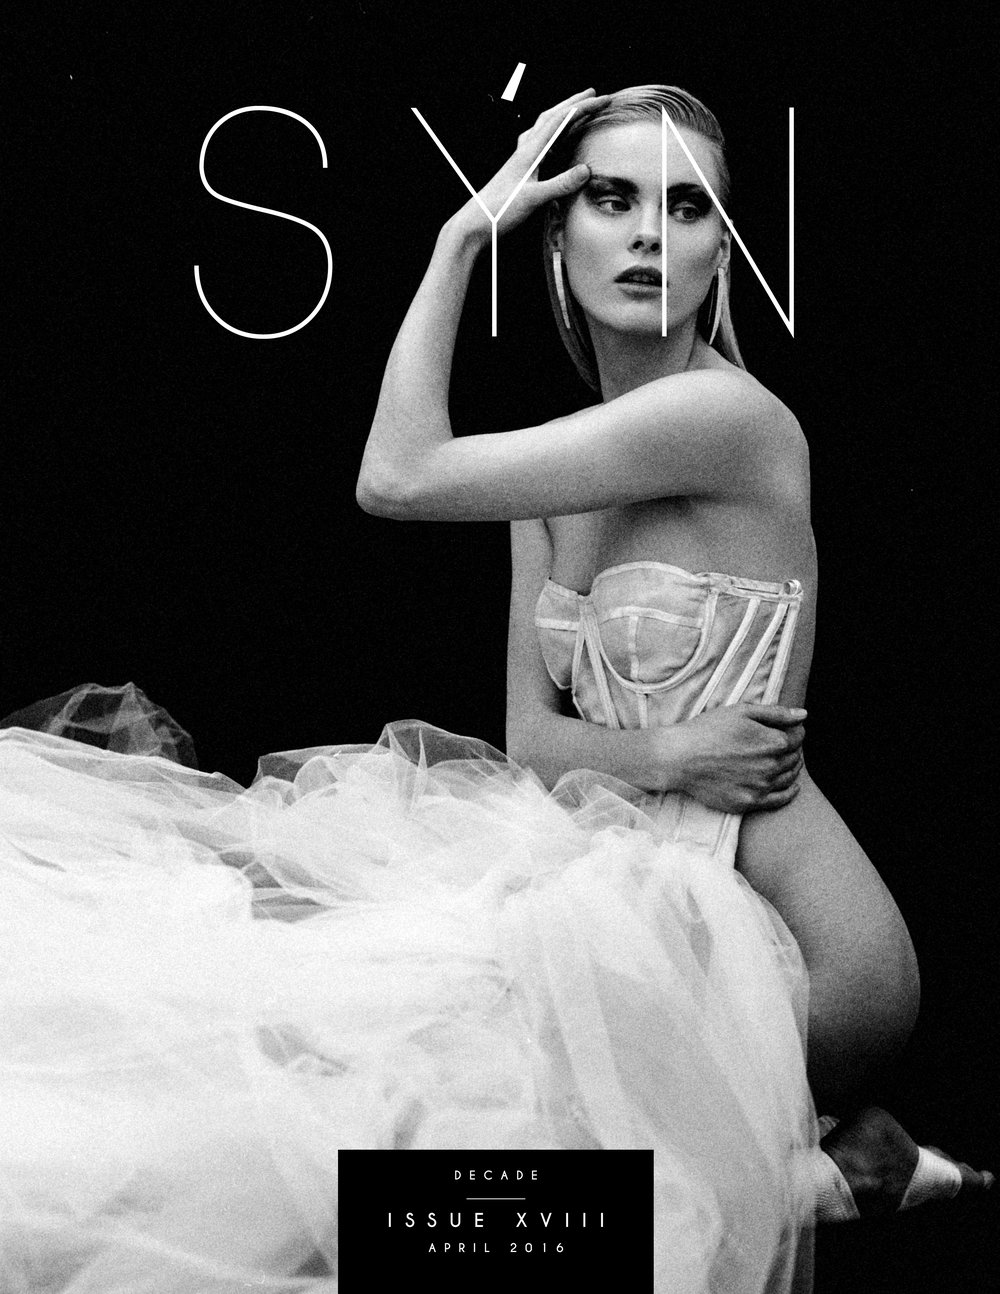 "COVER STORY ""WHITE SWAN"" FOR SÝN MAGAZINE DECADE ISSUE"